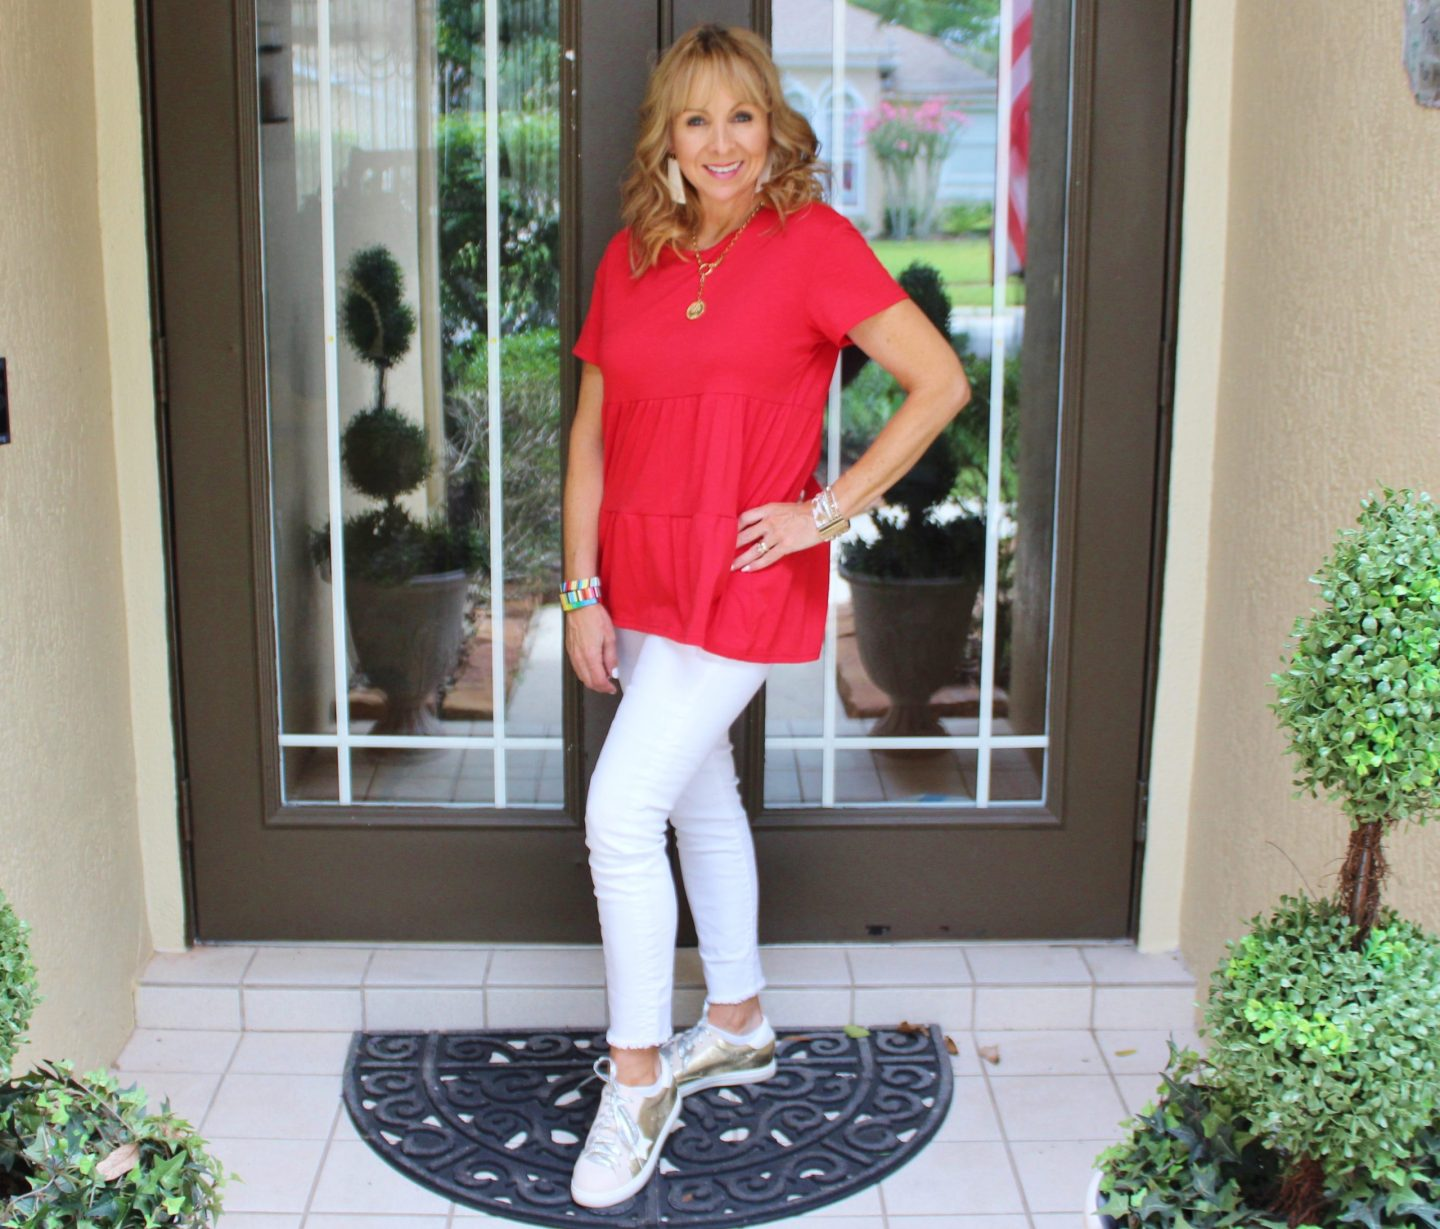 Red Tiered Tee + White Jeans + Sneakers